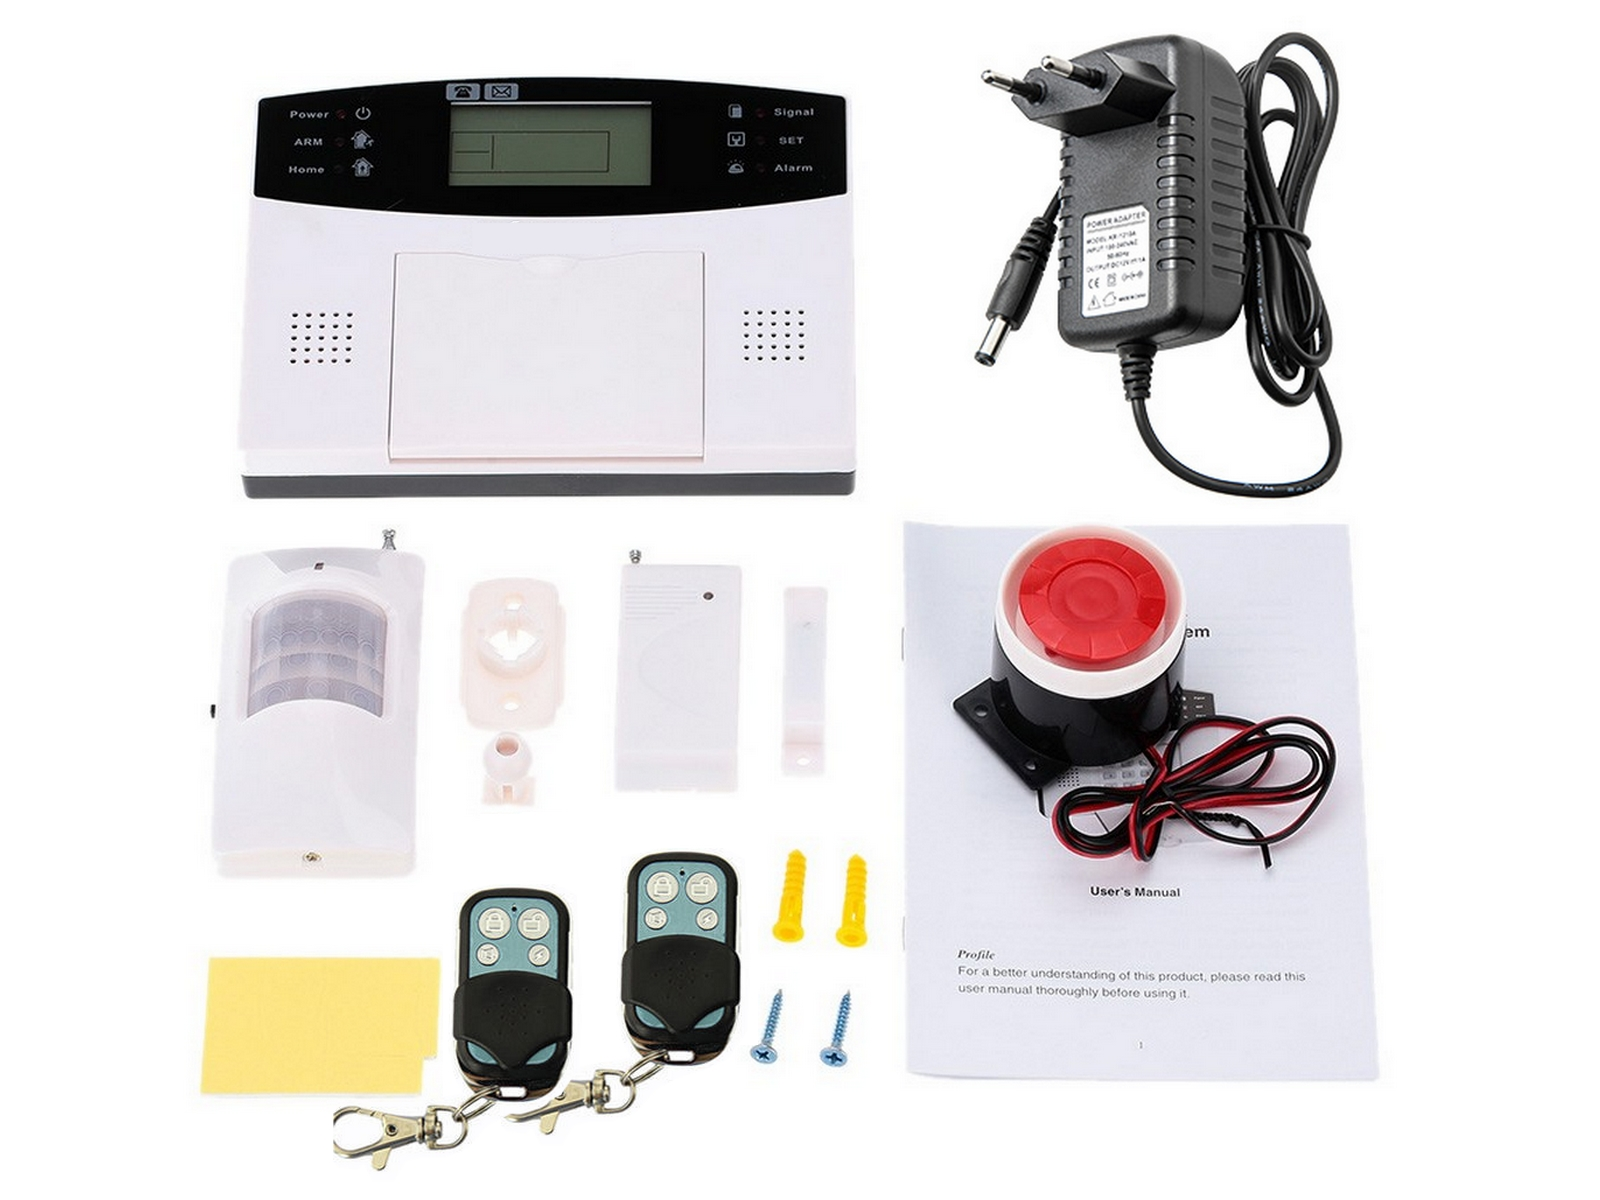 ANTIFURTO WIRELESS G 015 ALLARME GSM/SMS INTERFONO TIMER ZONE INTERFONO